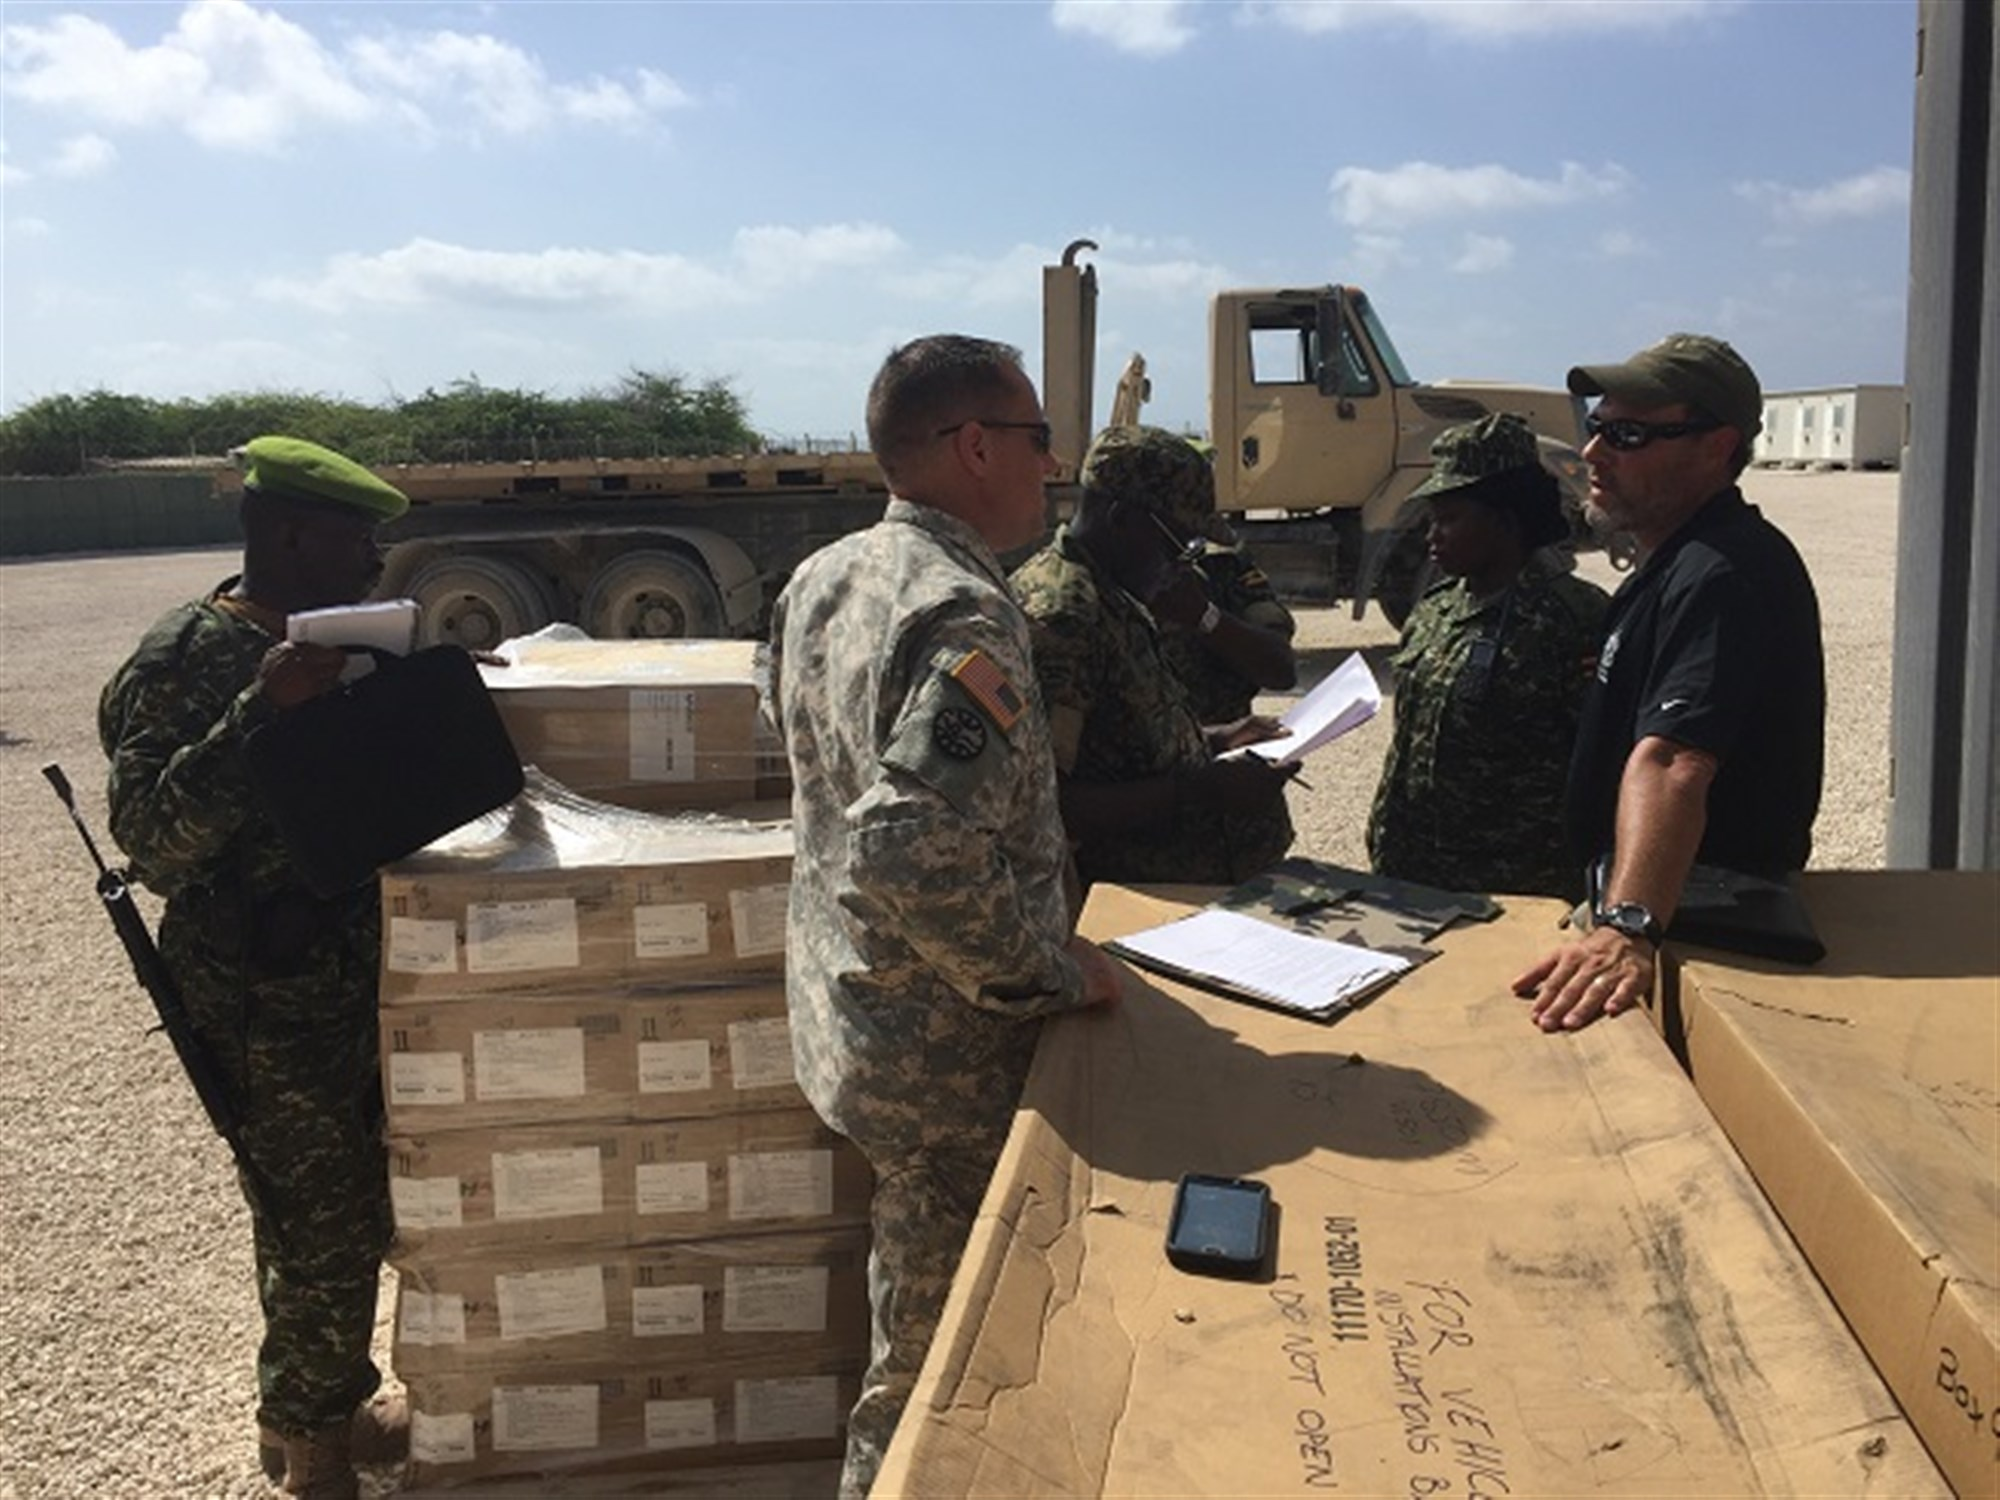 Members of the Uganda People's Defense Force take ownership of communications equipment delivered to them from the U.S. Army to be used in their support to the African Union Mission in Somalia.